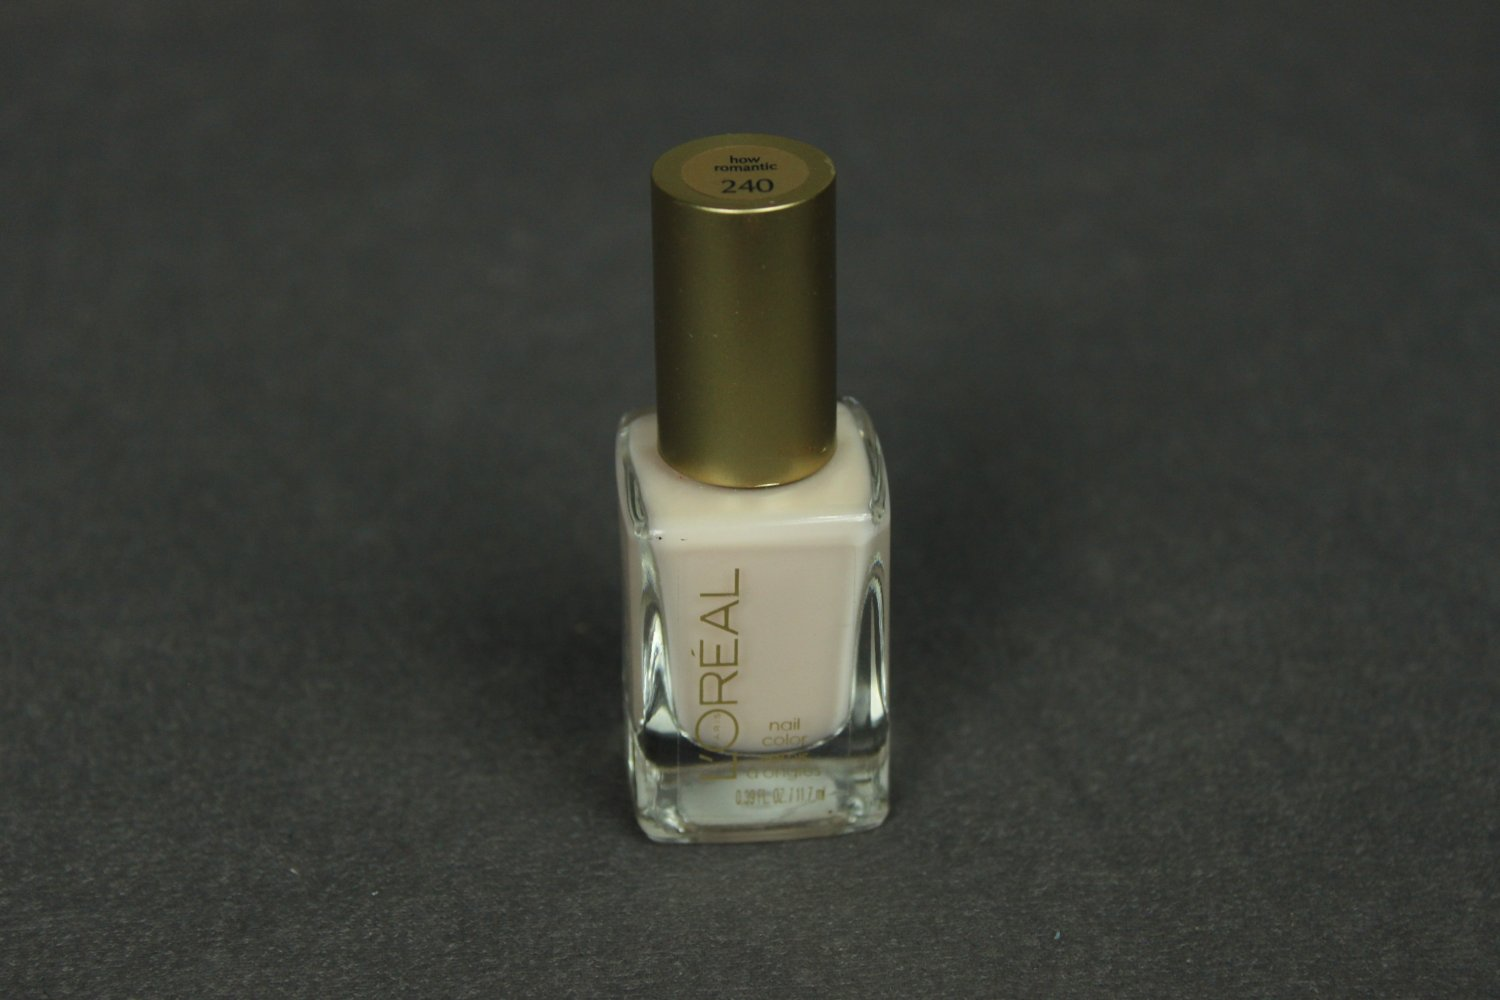 Loreal HOW ROMANTIC Nail Polish #240